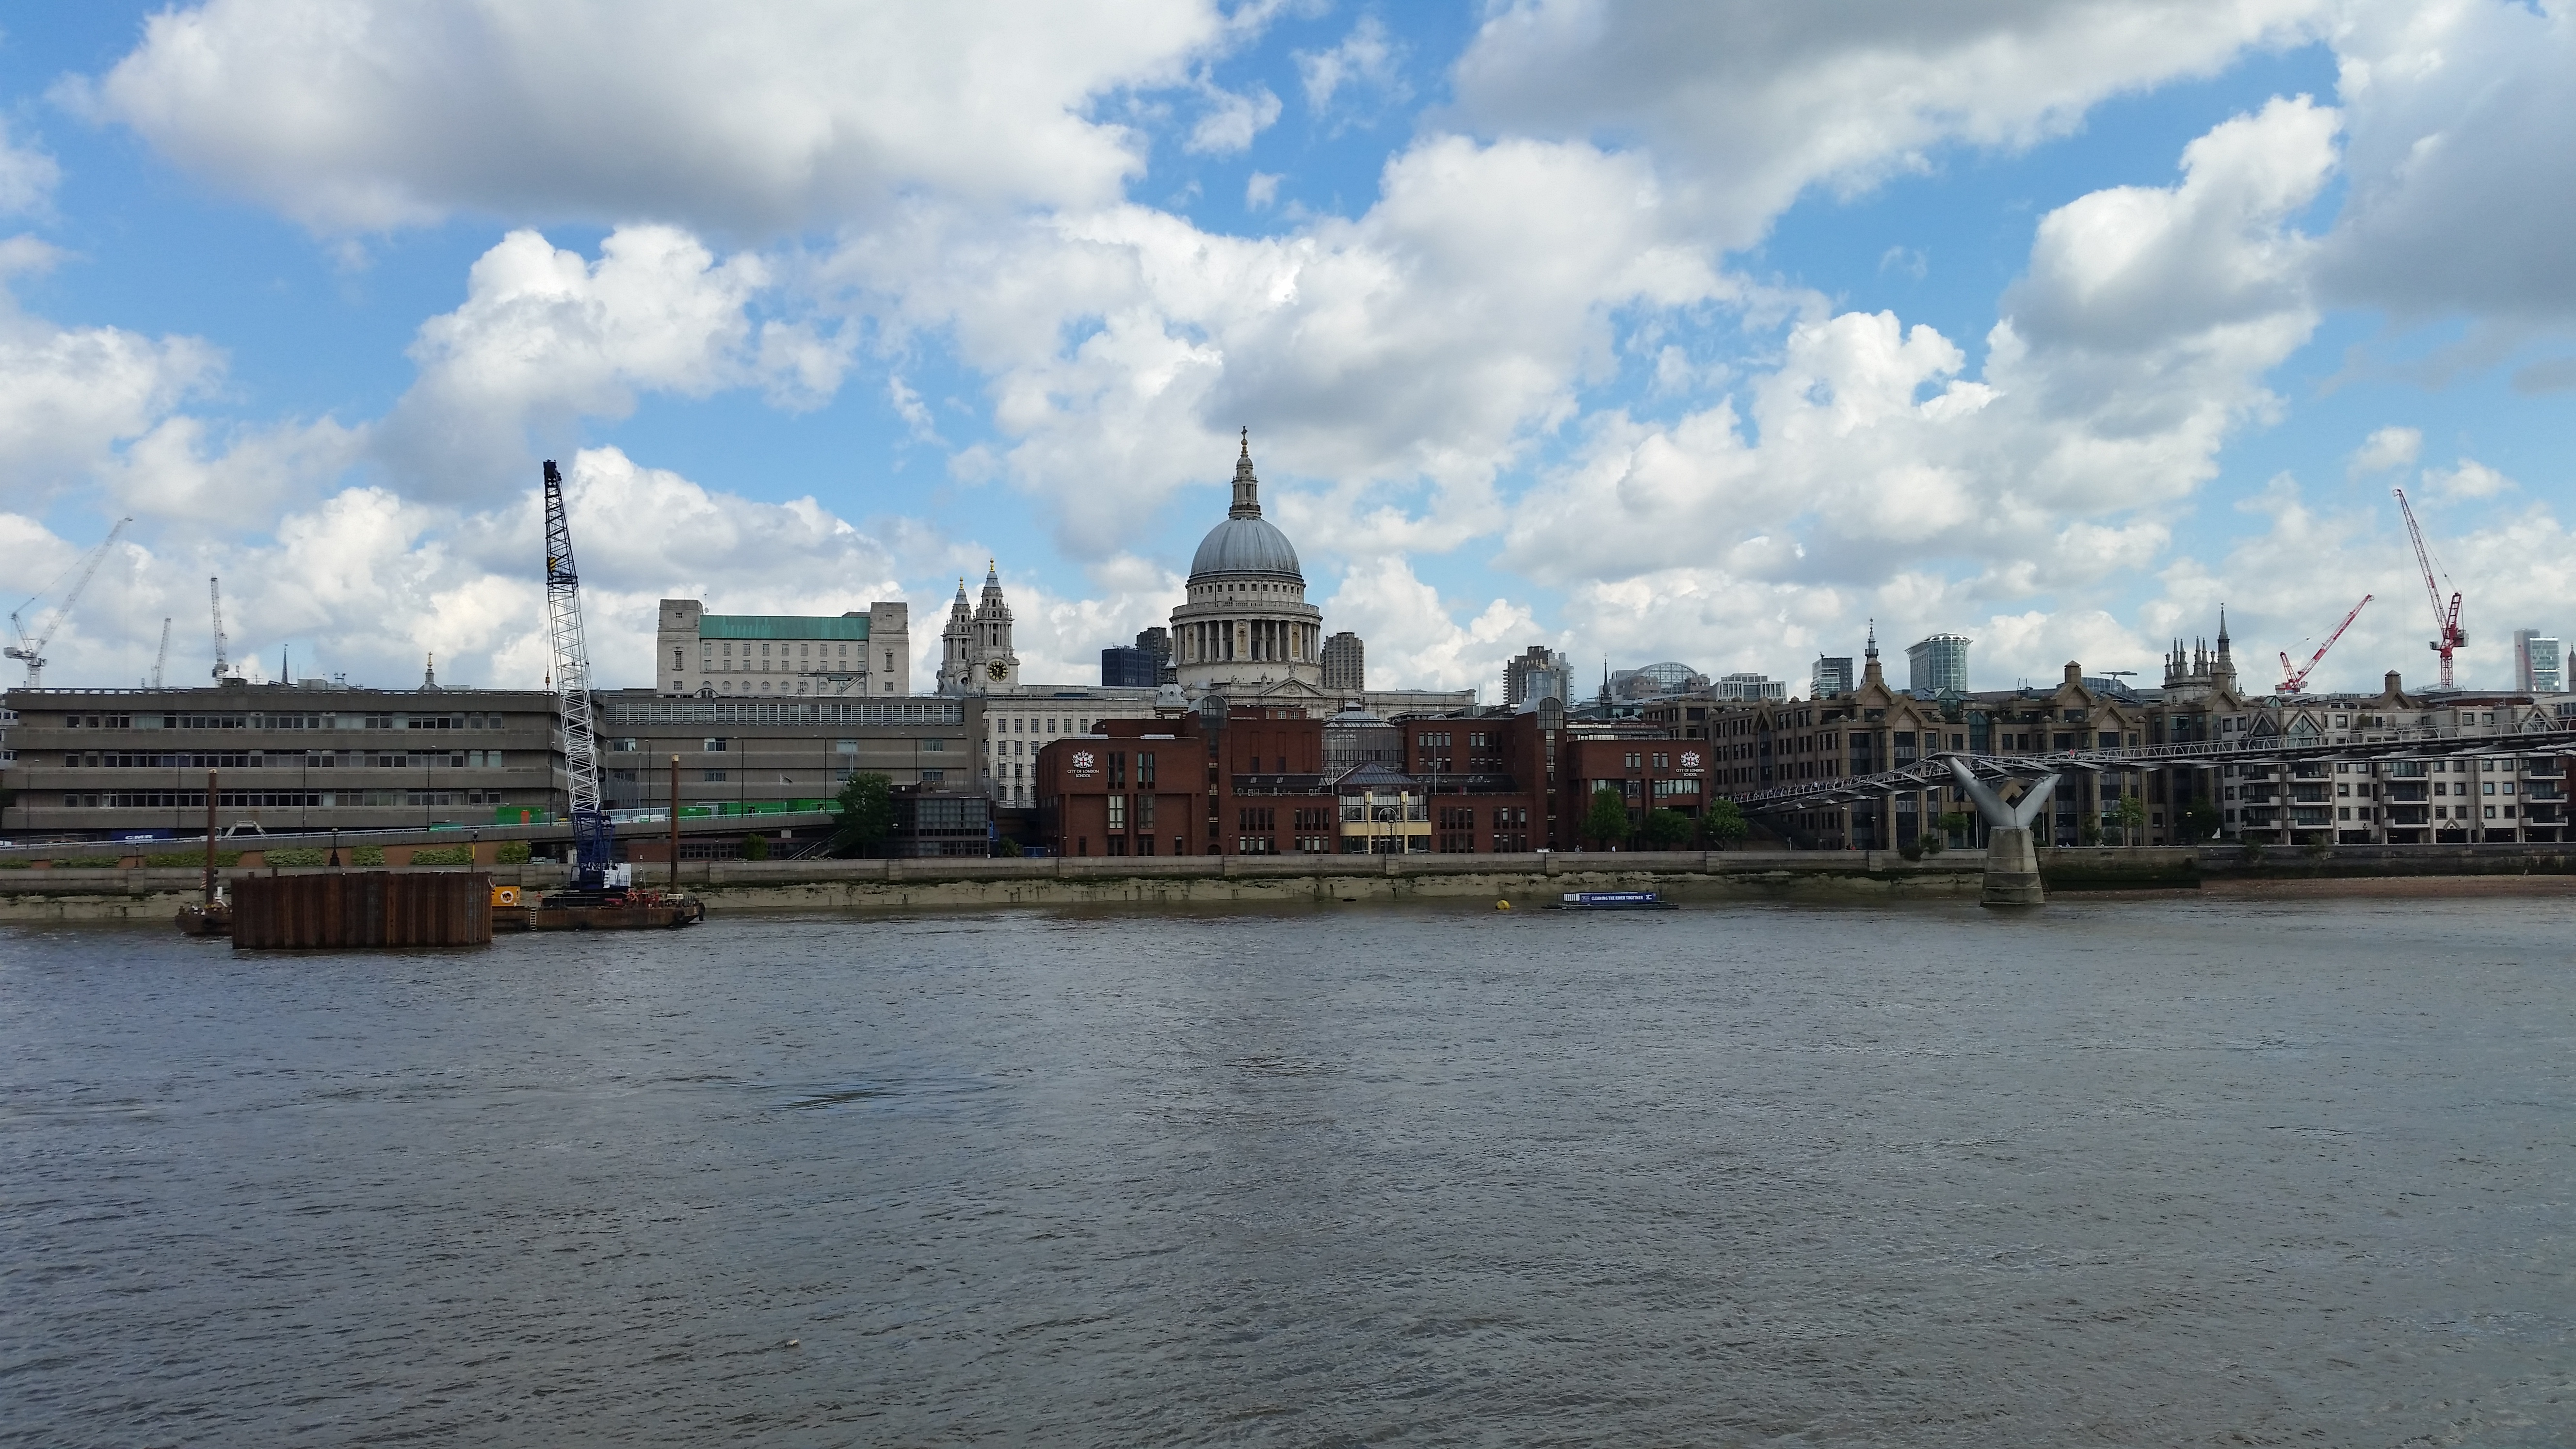 st-pauls-hdr-k-zoom-s5-compare.jpg